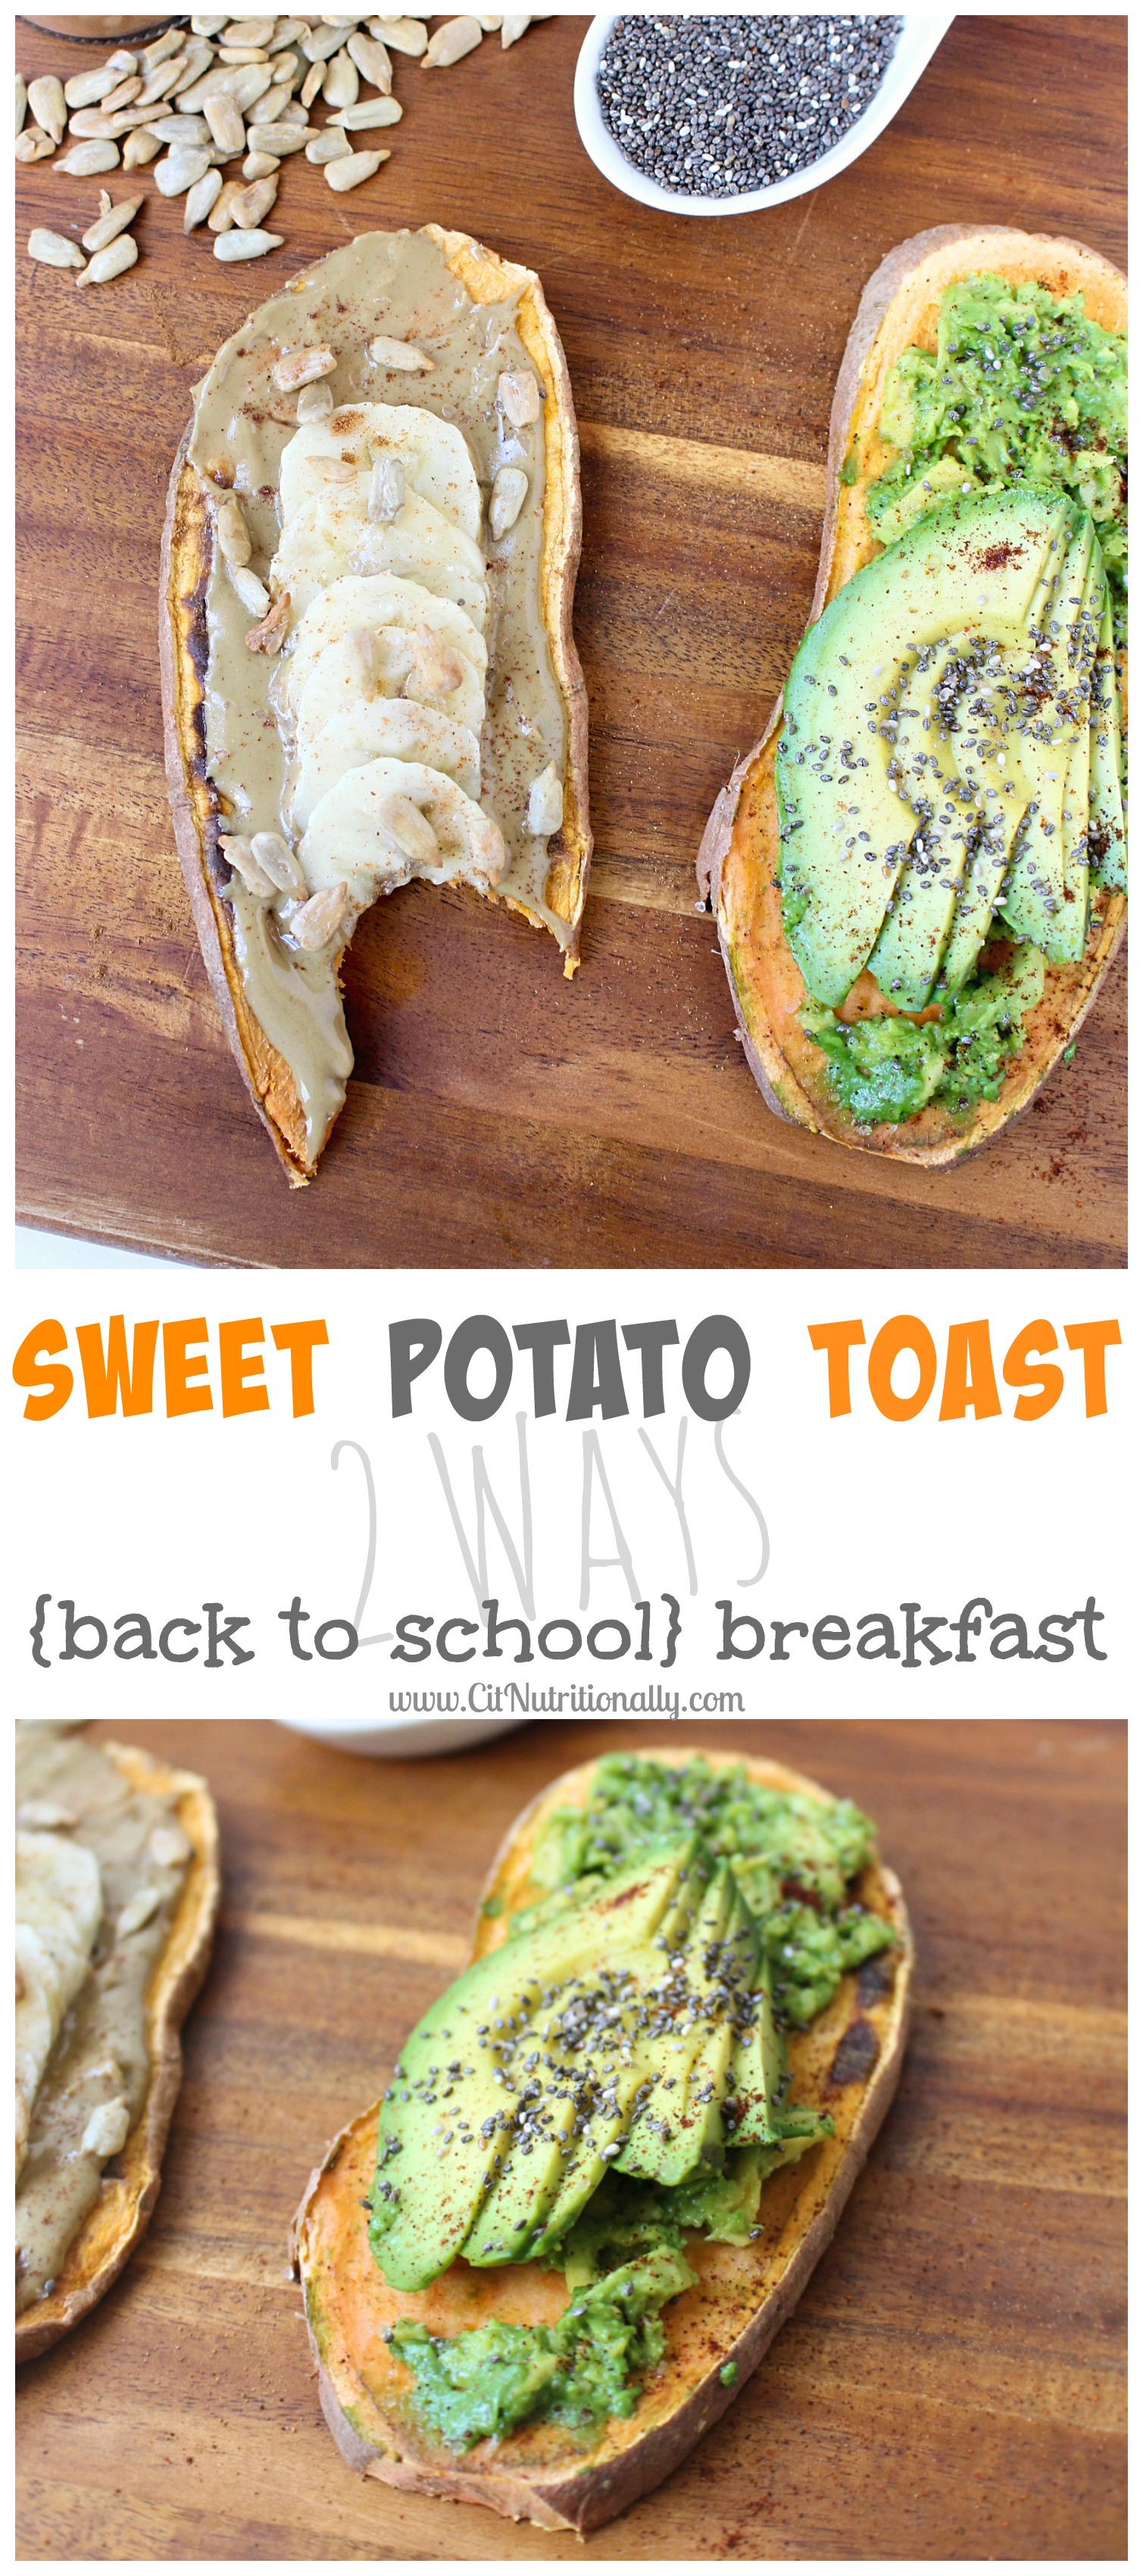 Sweet Potato Toast, 2 Ways {Back To School Breakfast} | C it Nutritionally #grainfree #glutenfree #vegan #breakfast